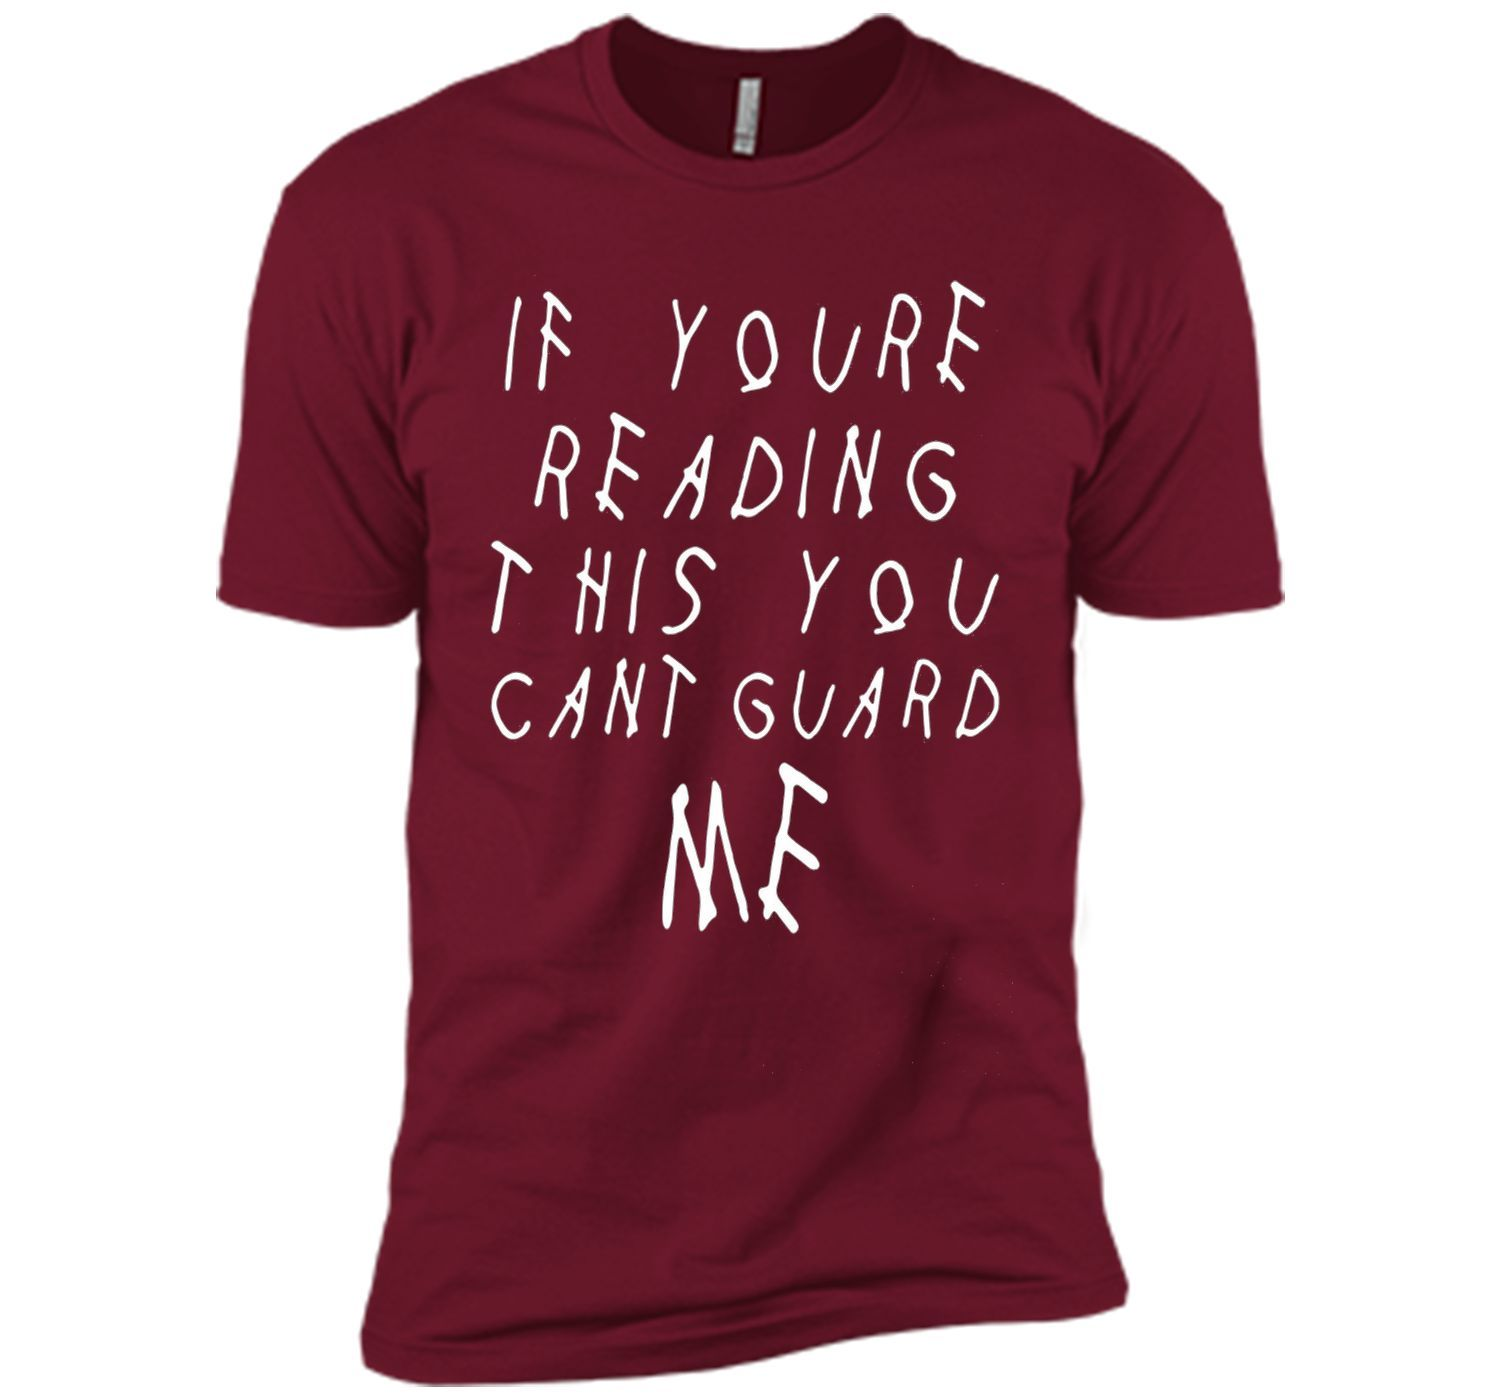 If youre reading this you can't guard me T-shirt